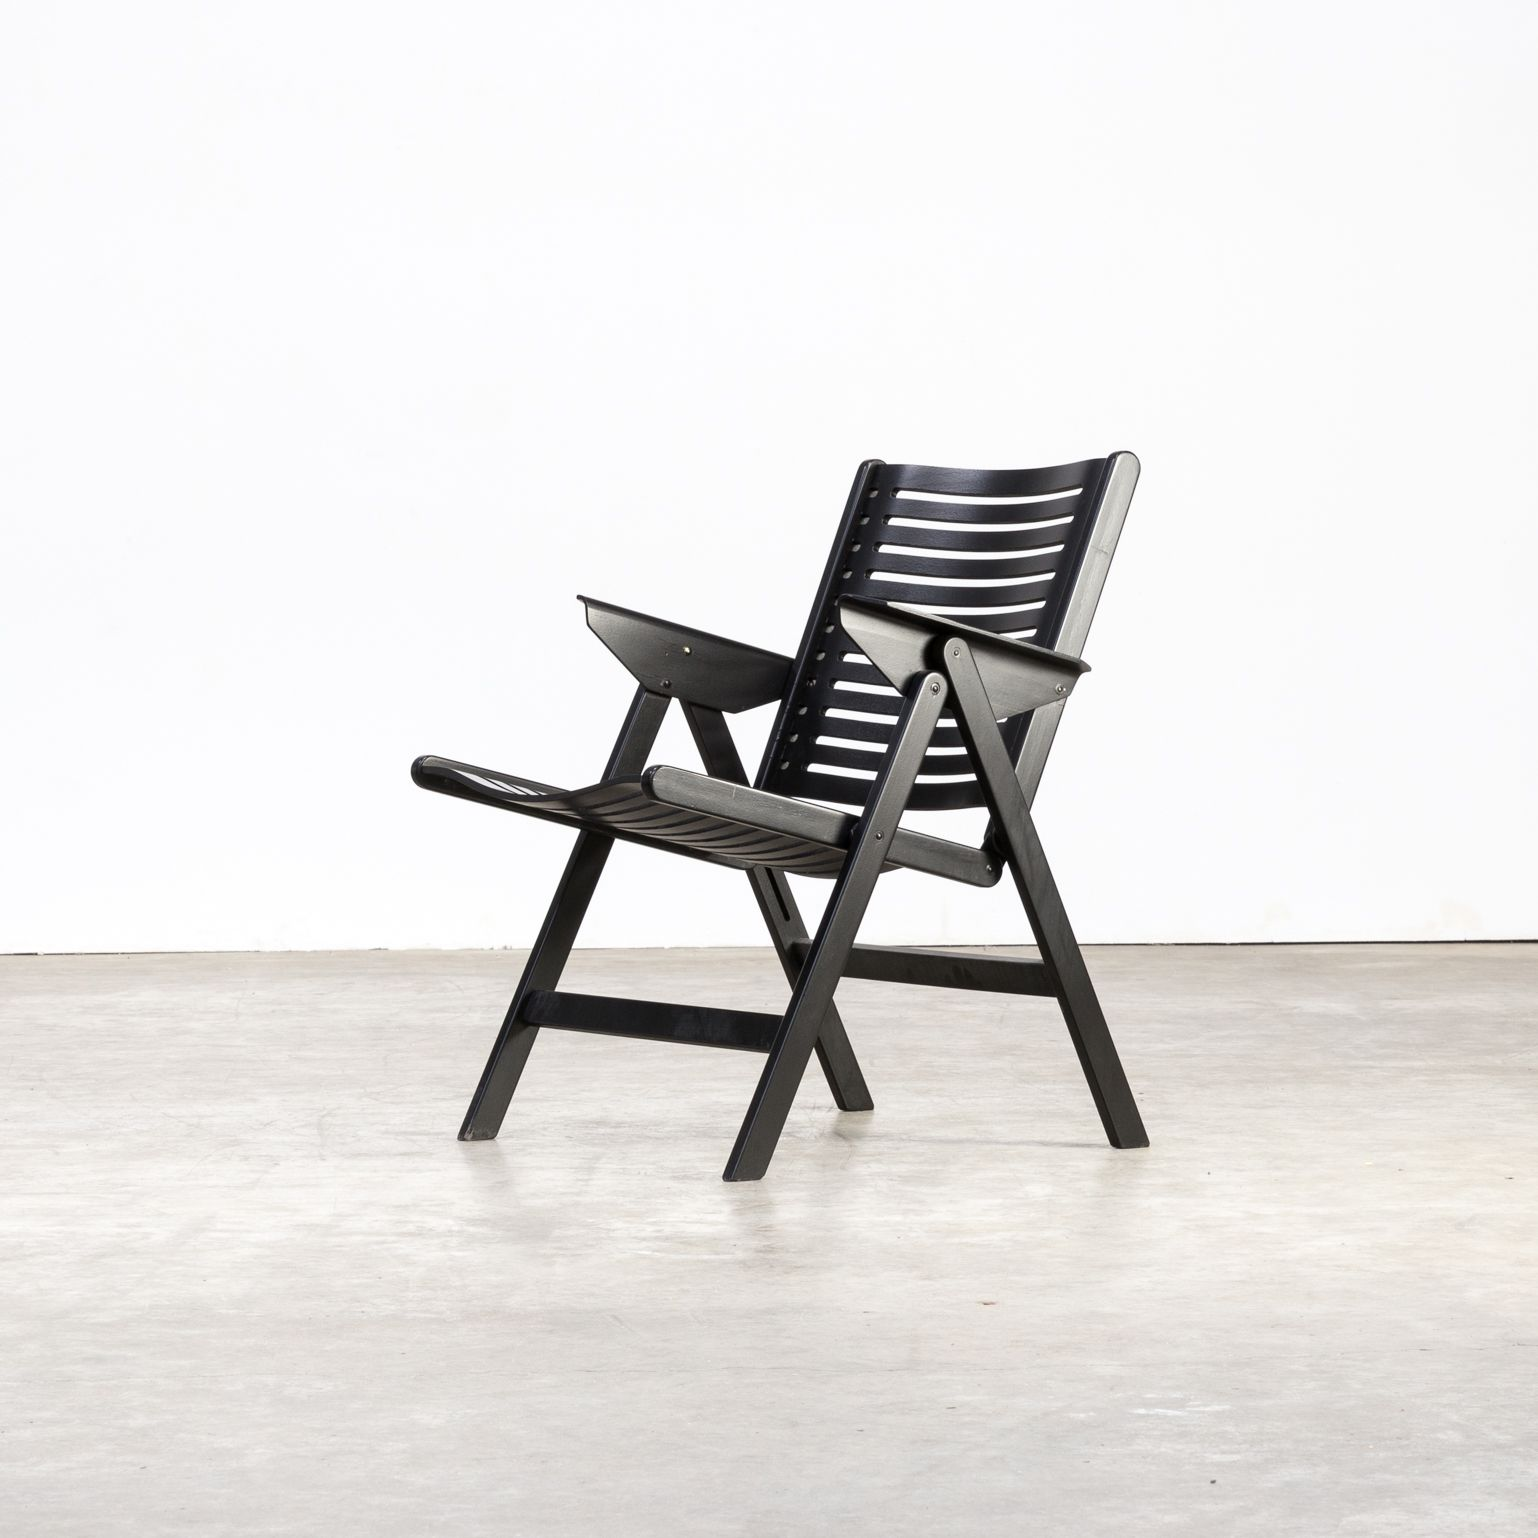 Groovy Set of 4 folding chairs by Niko Kralj for Stol - Design Market VH-71